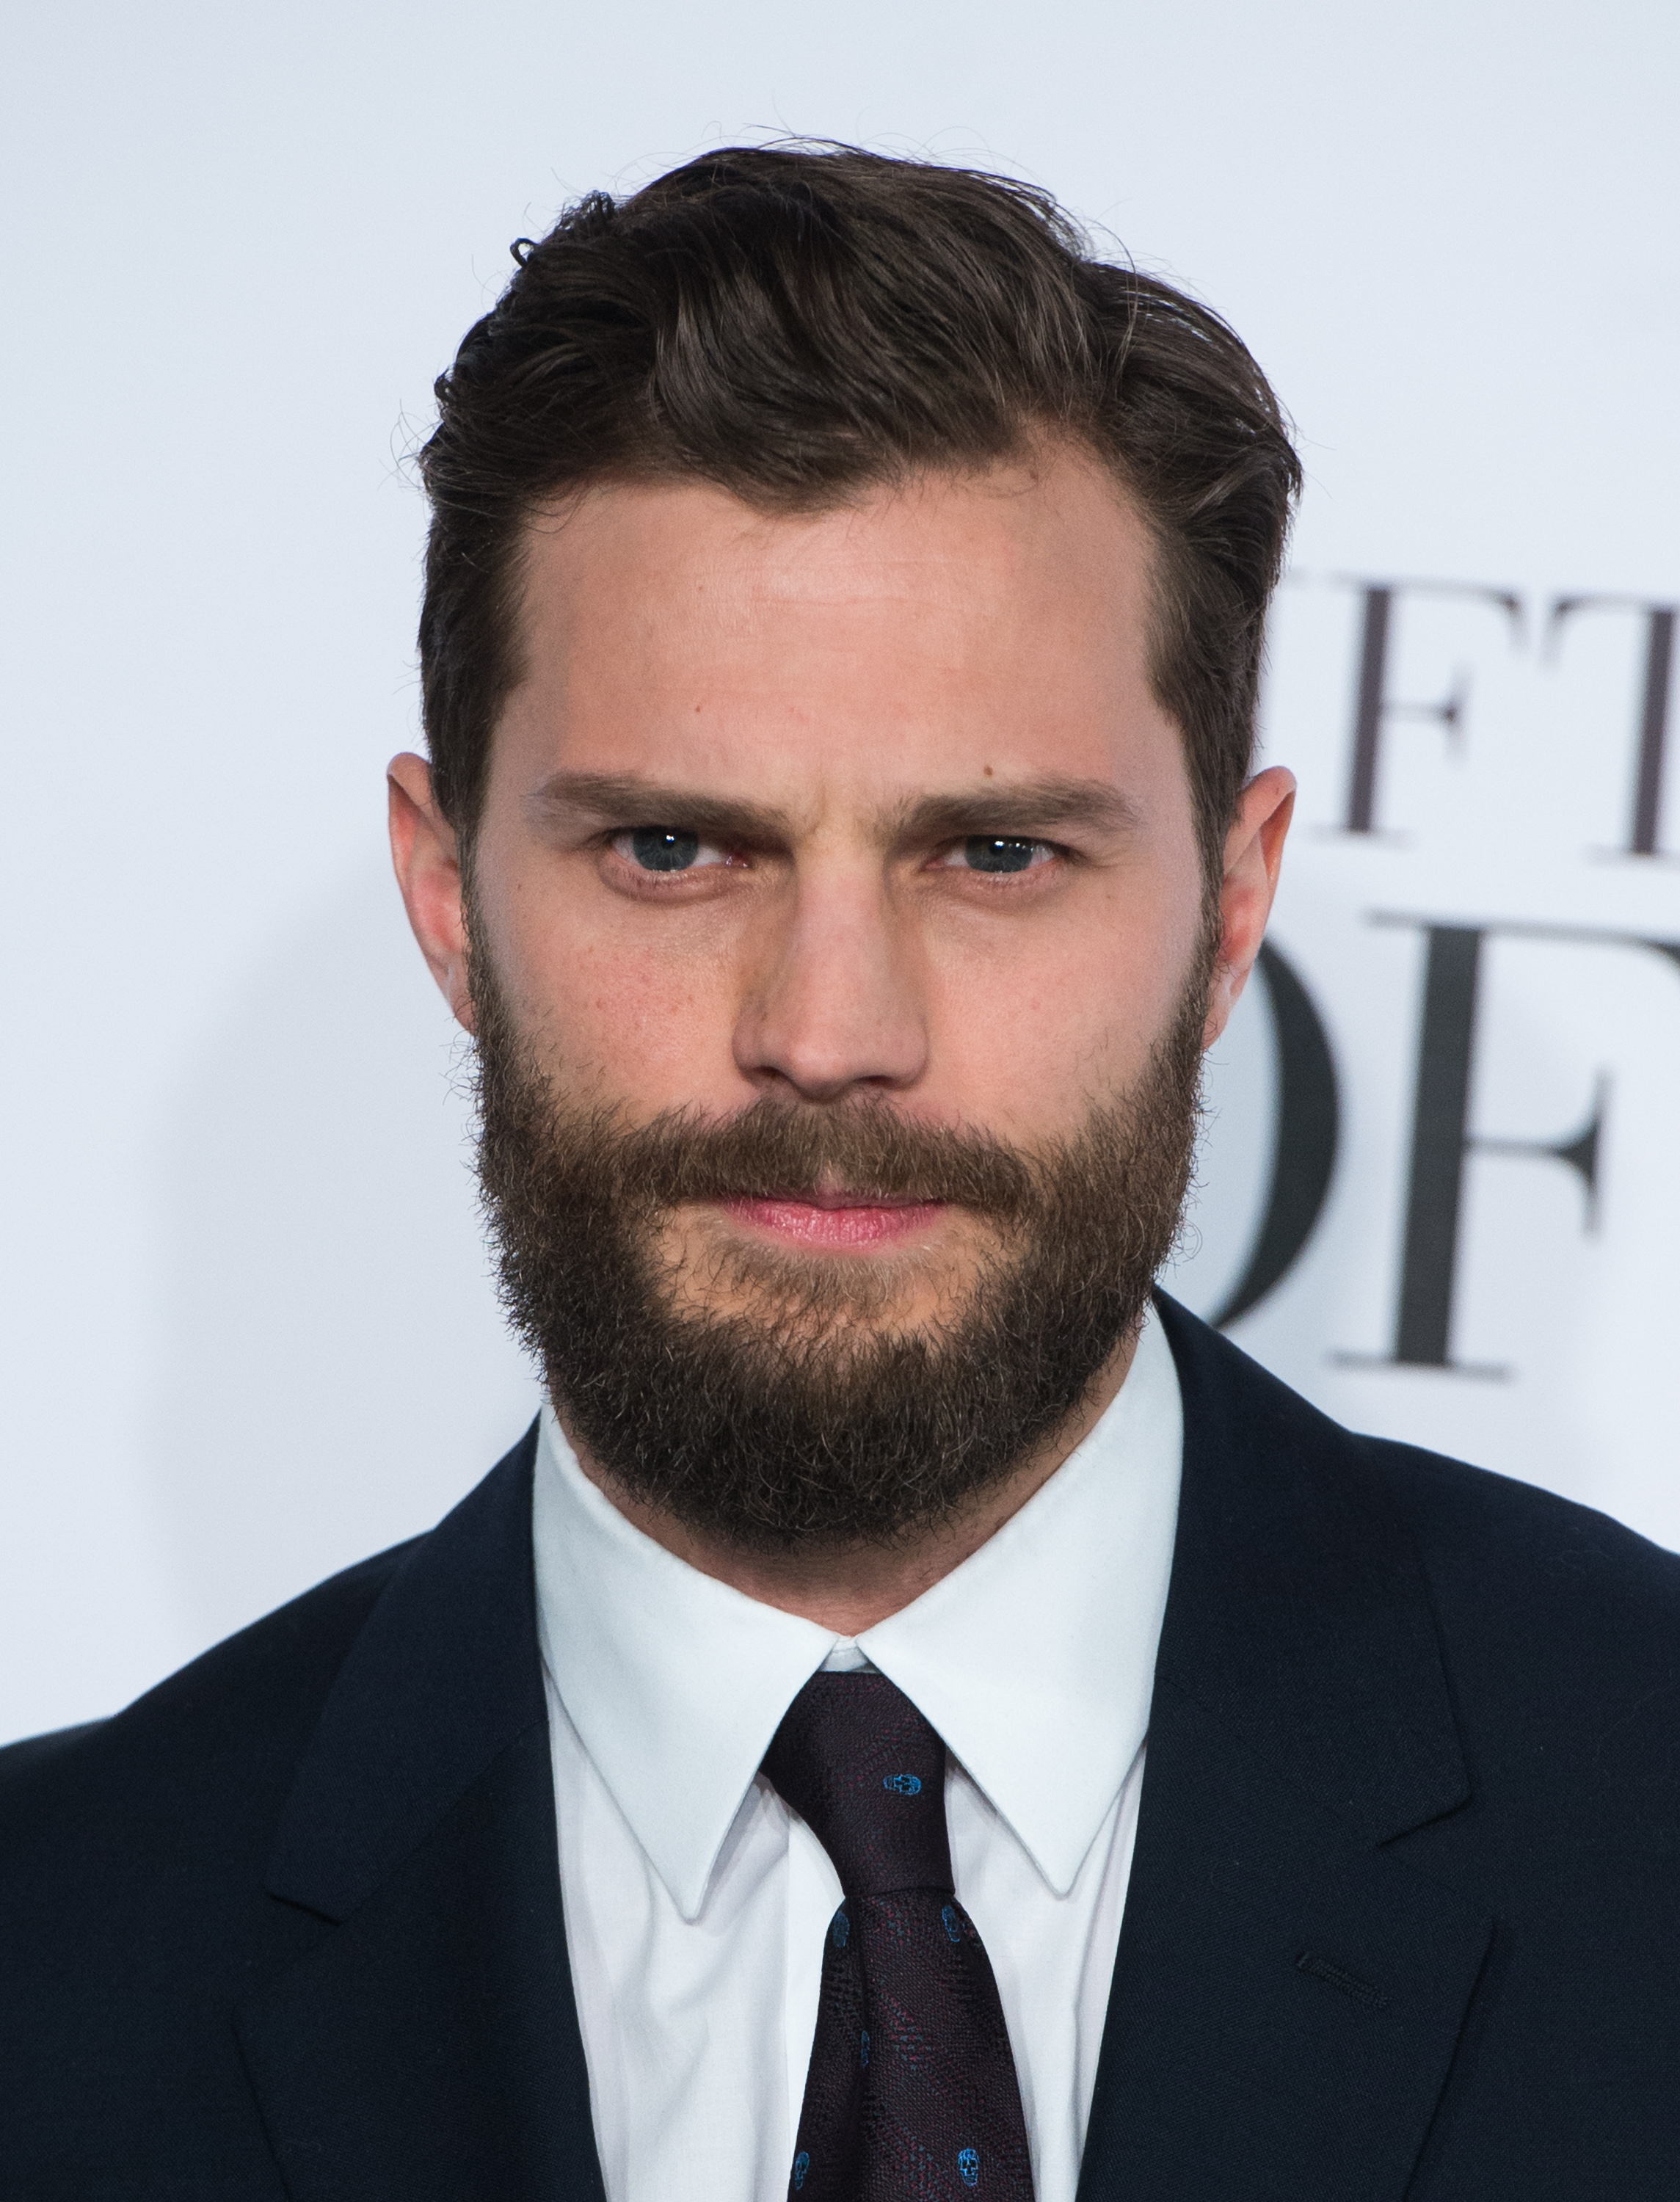 Jamie Dornan attends the UK Premiere of 'Fifty Shades Of Grey' in London on Feb. 12, 2015.